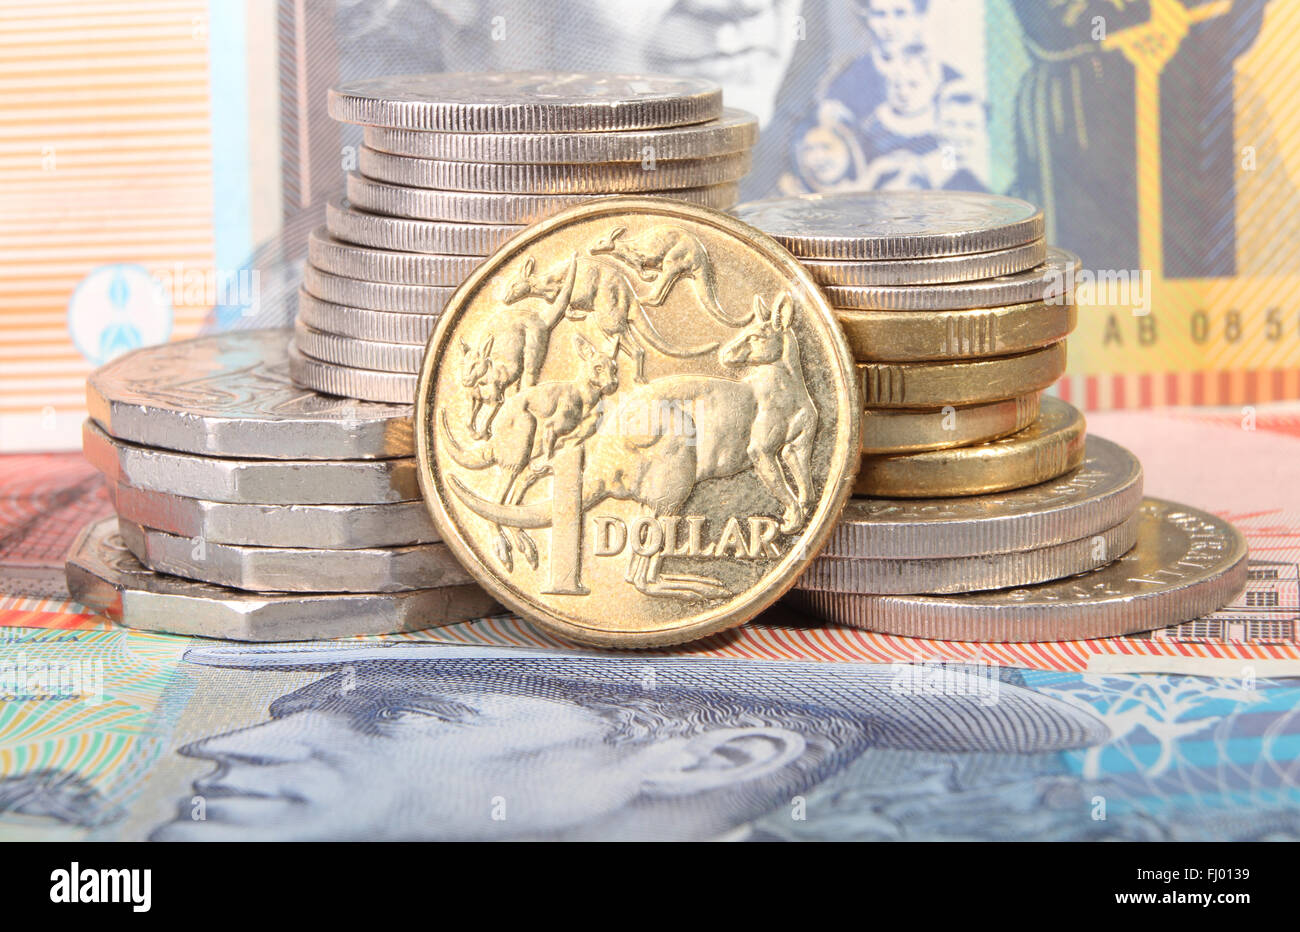 An Australian gold one dollar coin sits next to a stack of coins on top of Australian bank notes. - Stock Image